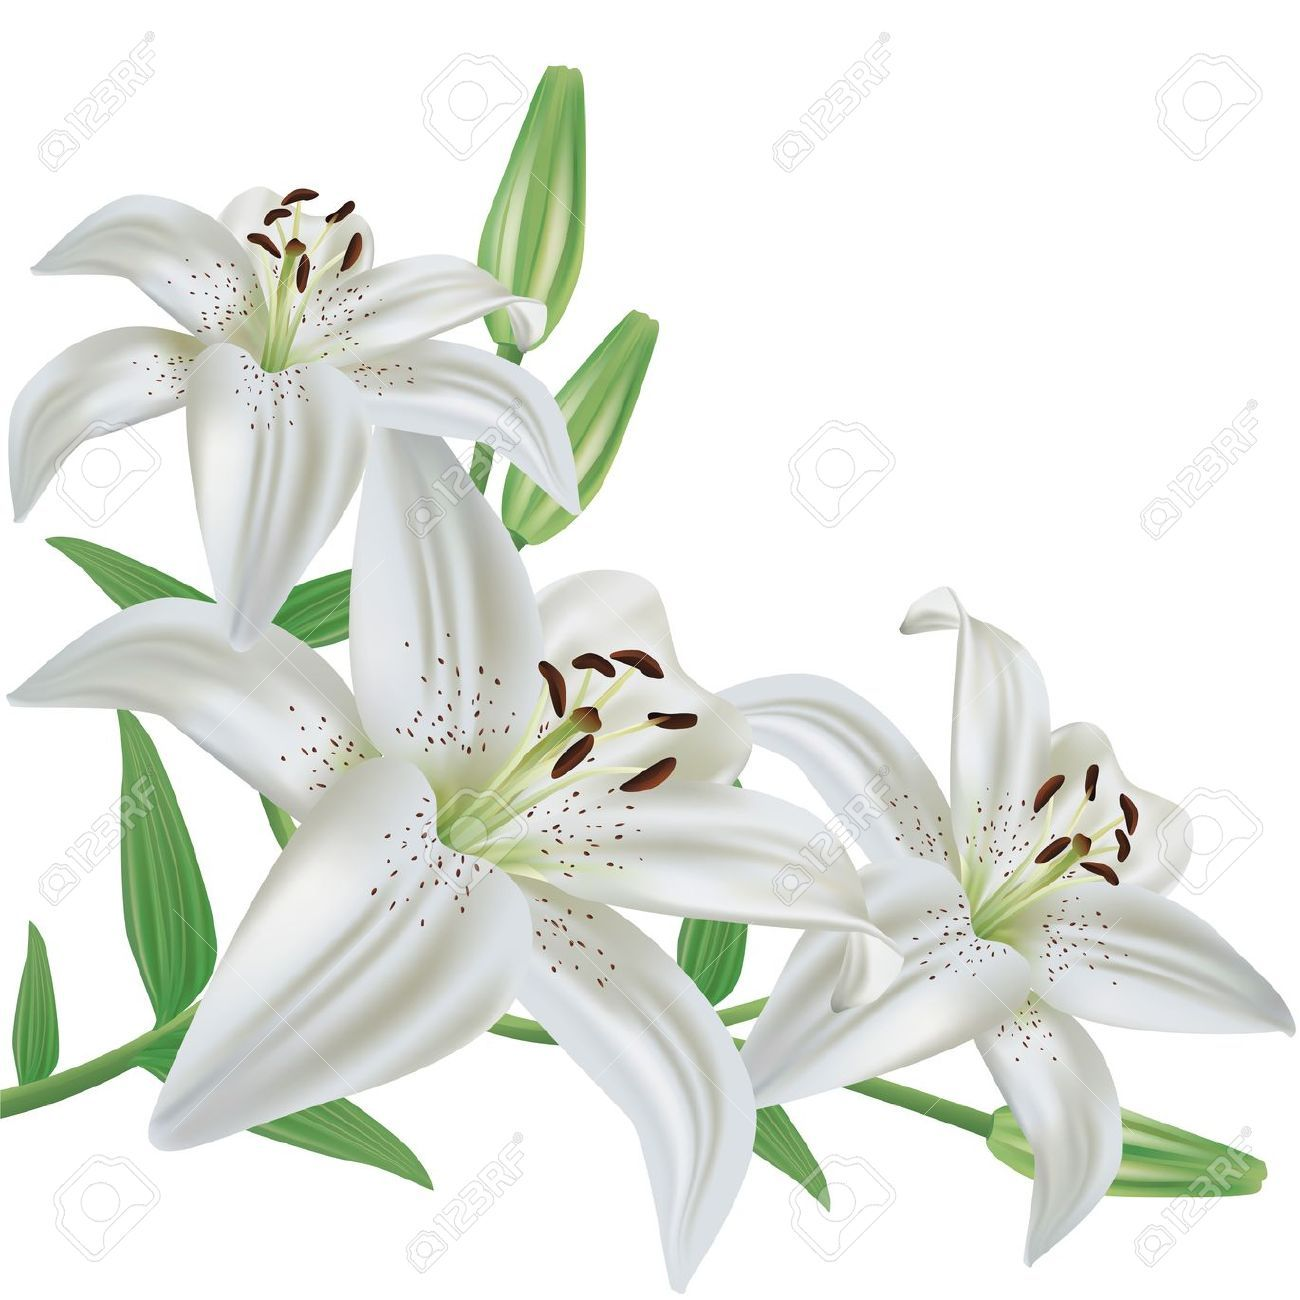 Lily flower google search lily flower pinterest lilies lily flower google search dhlflorist Choice Image